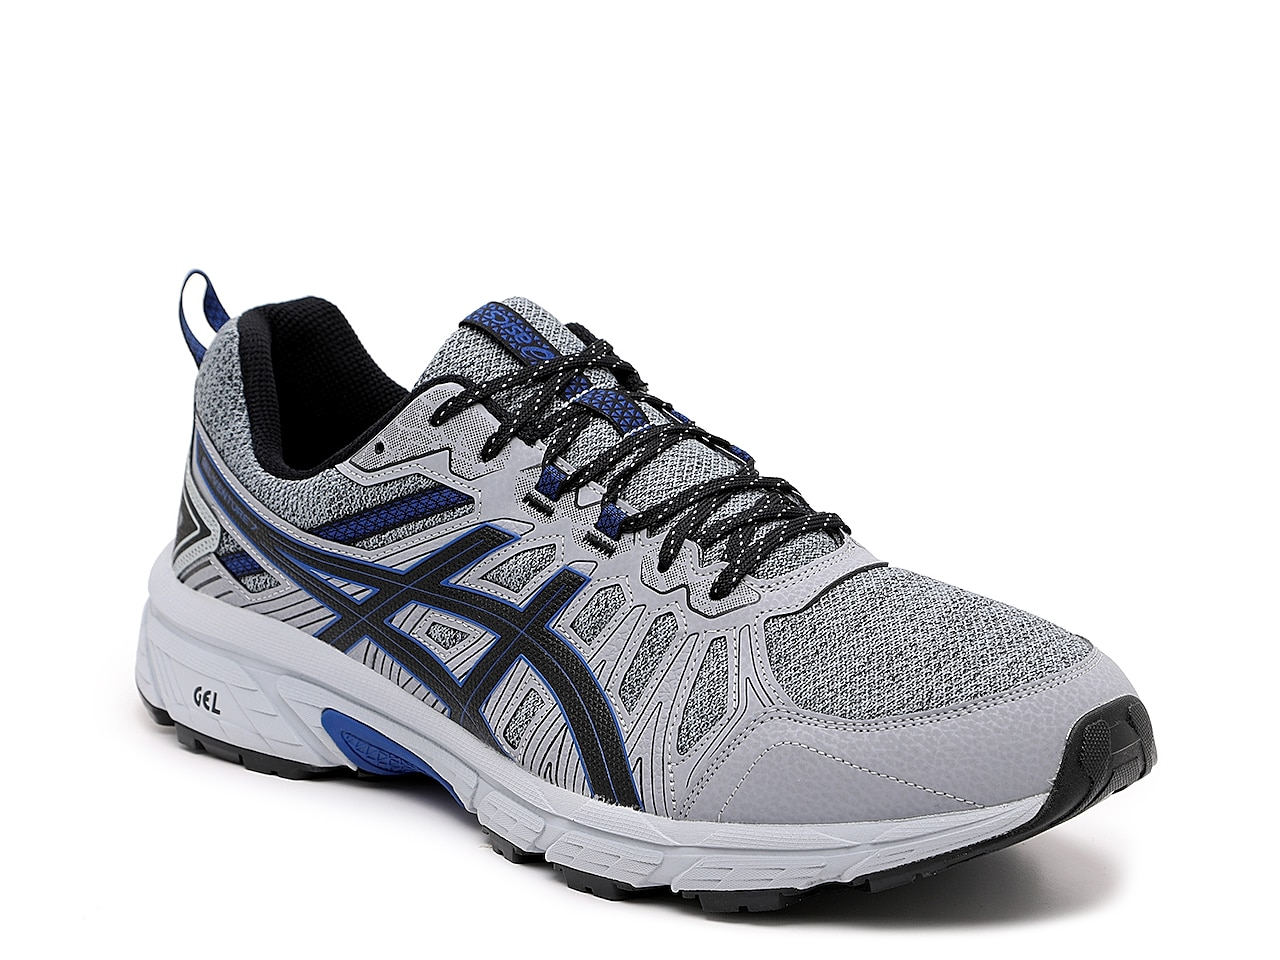 GEL-Venture 7 Running Shoe - Men's